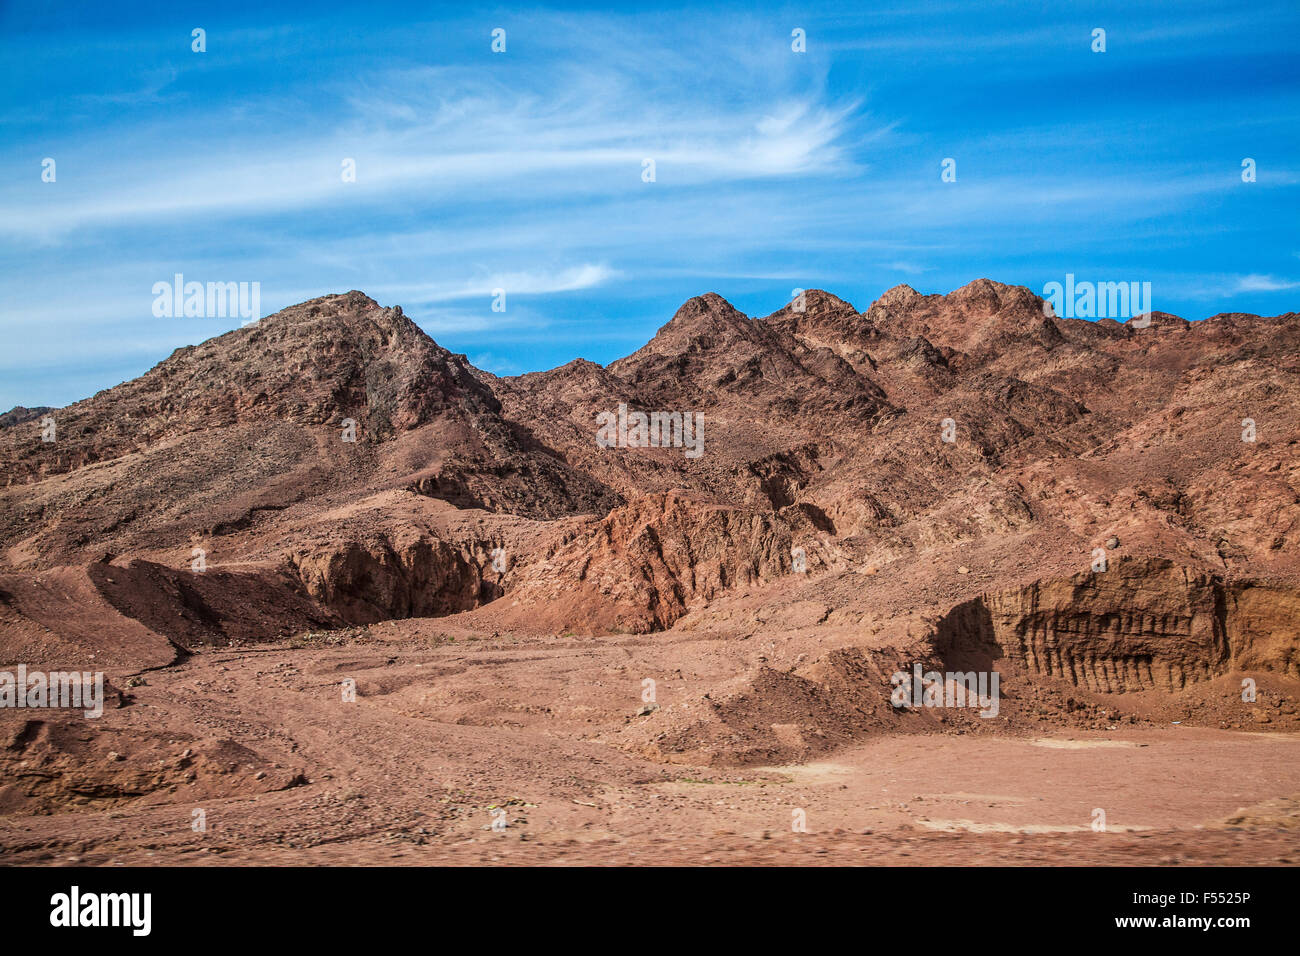 The desert landscape of the Sinai Peninsula on the road from Cairo to Dahab in Egypt. - Stock Image